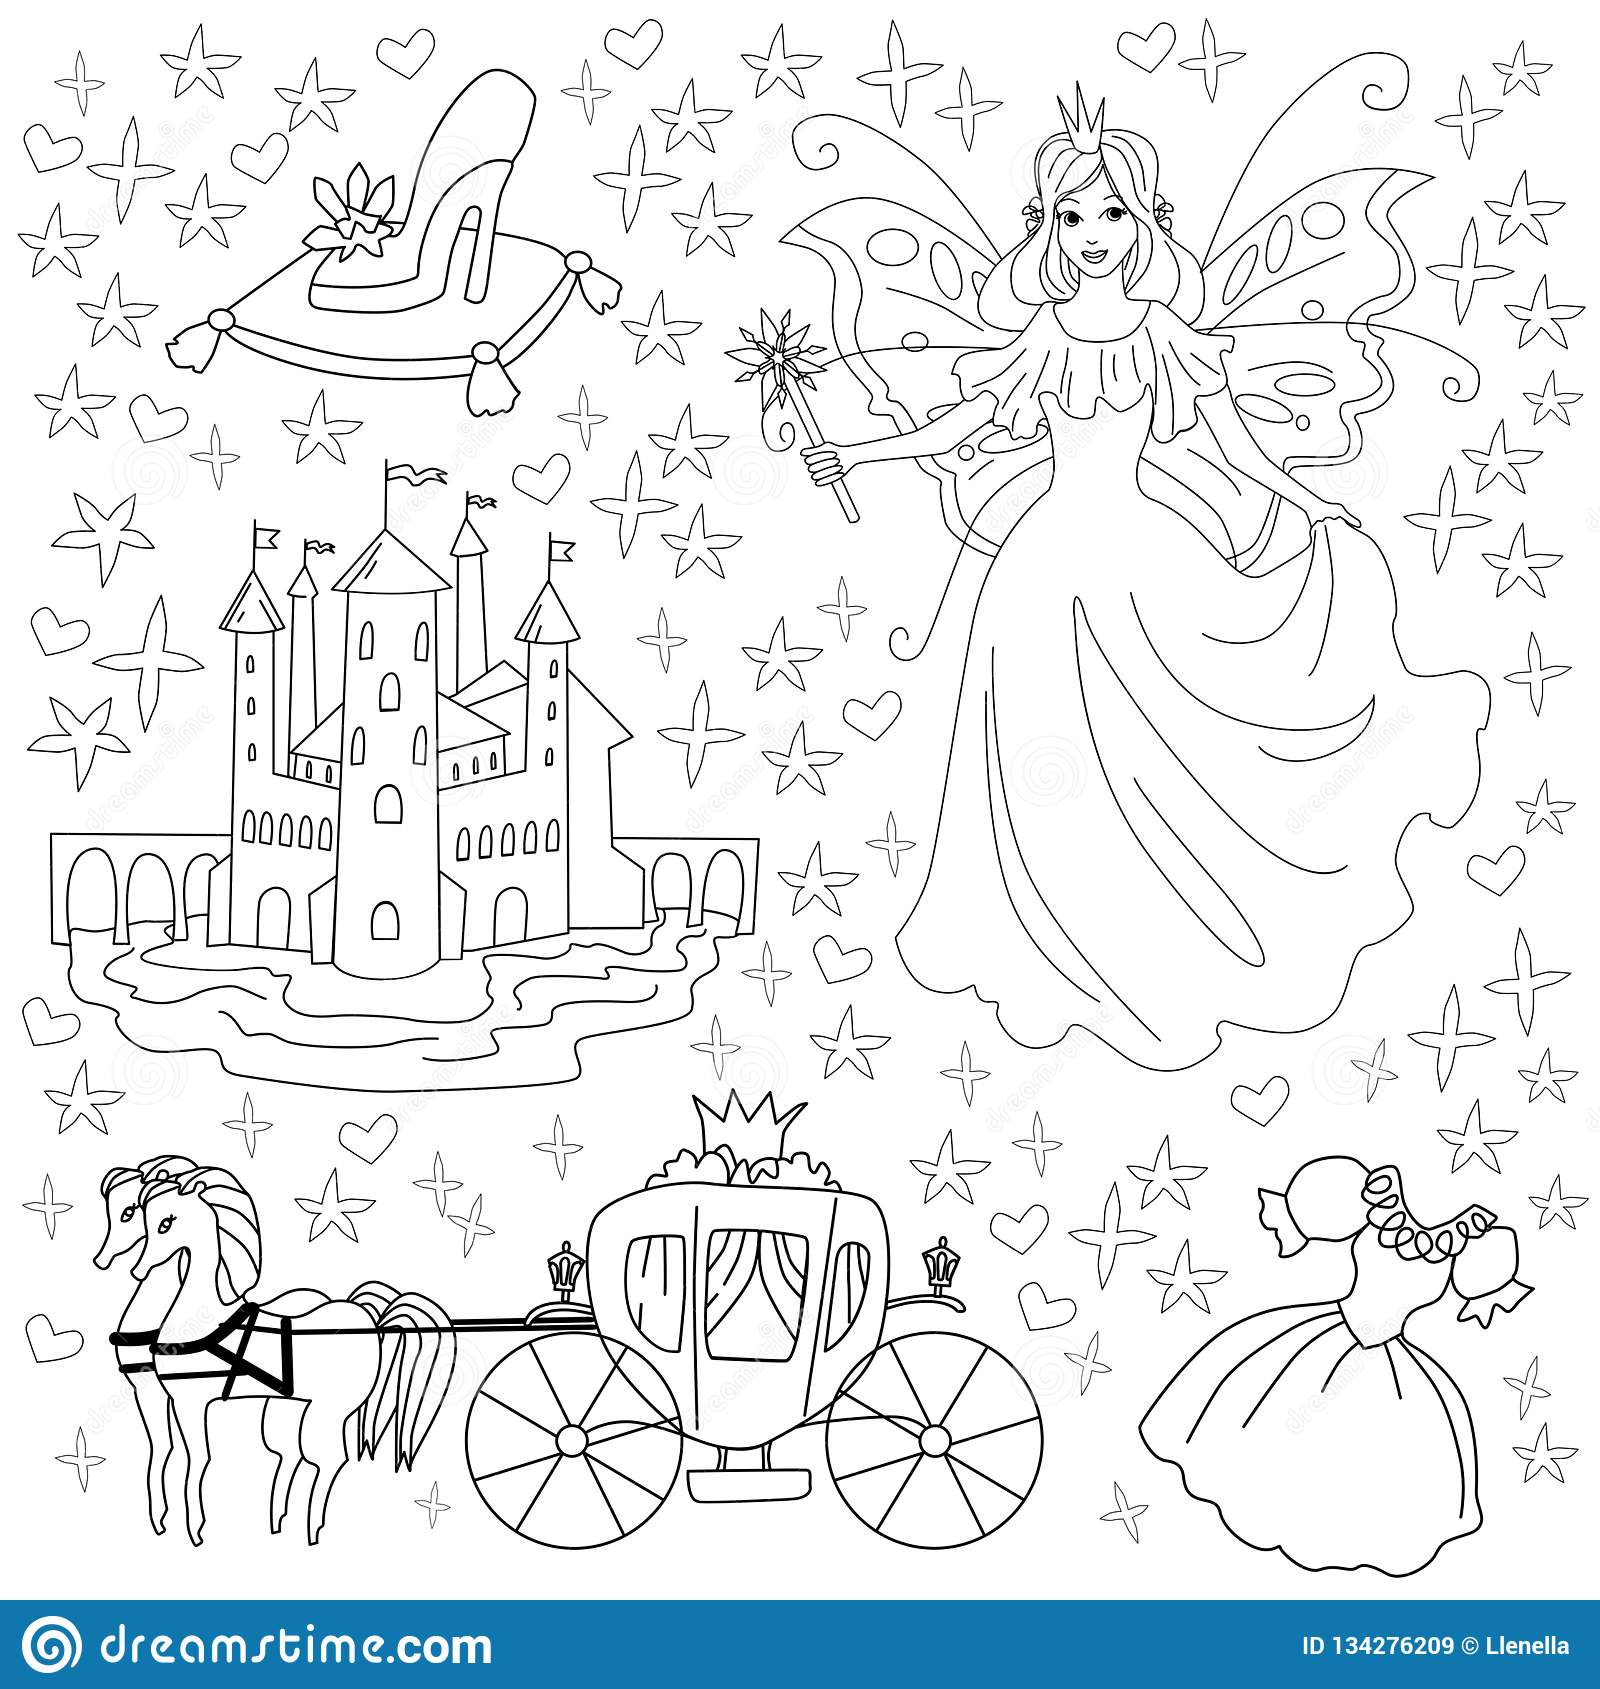 Fairy Tale Coloring Page For Kids Vector Illustration Of Princess